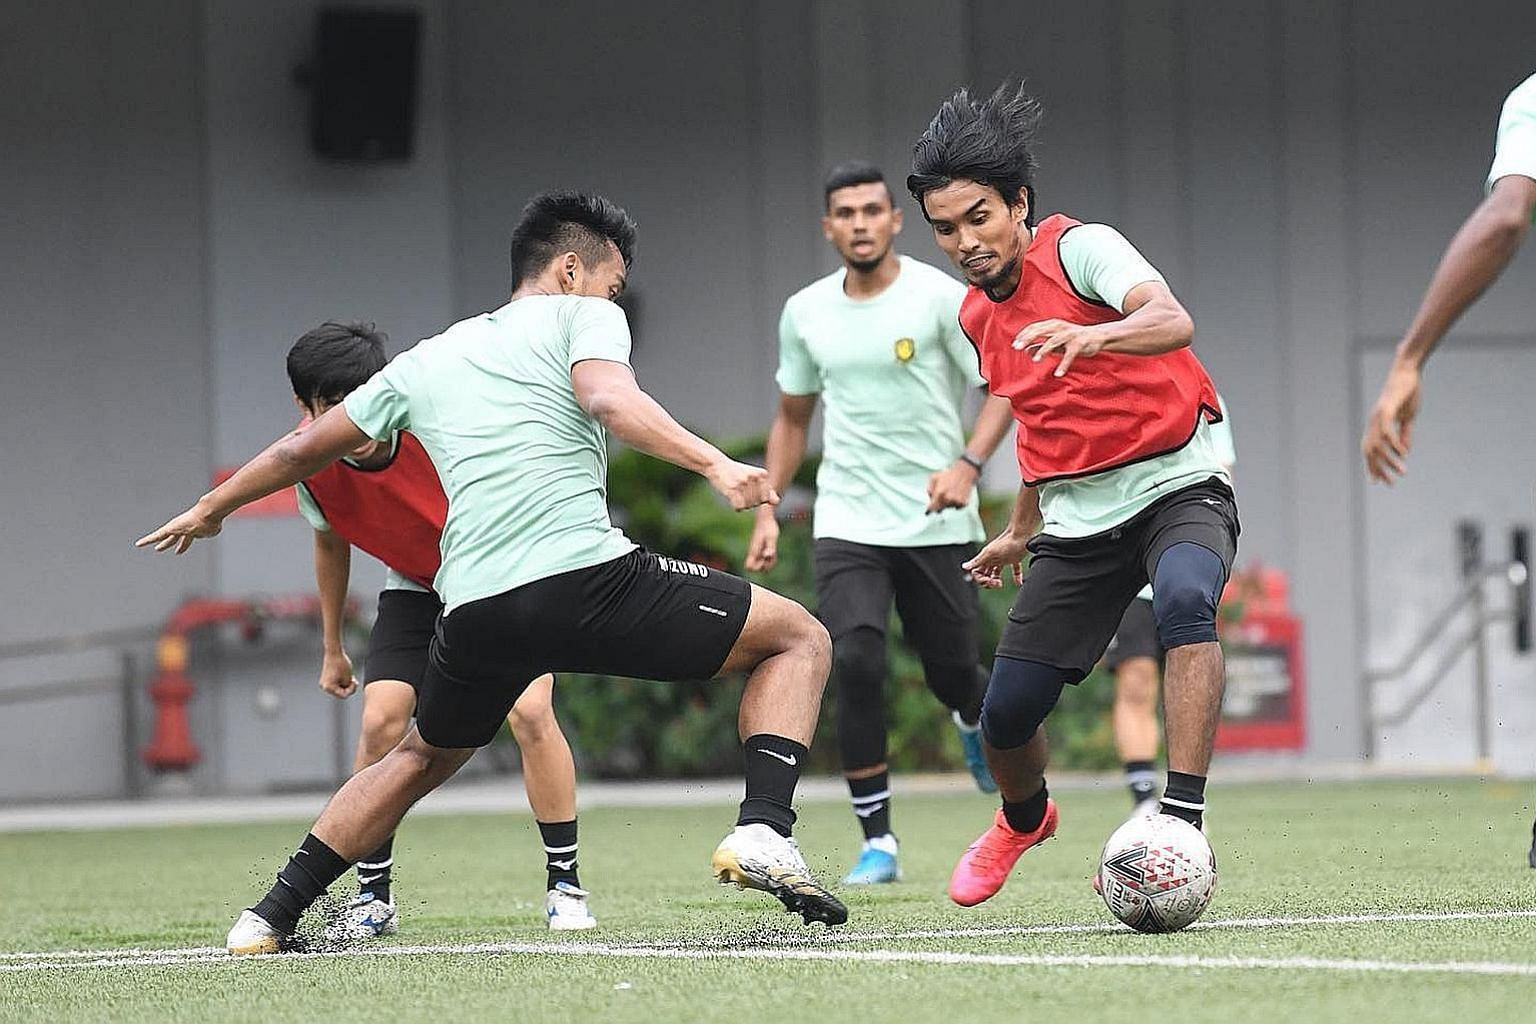 Yasir Hanapi training with his Singapore Premier League team Tampines Rovers, who led the standings before the hiatus in March. The players are desperate to return to competition after months training online during the circuit breaker, and then two m